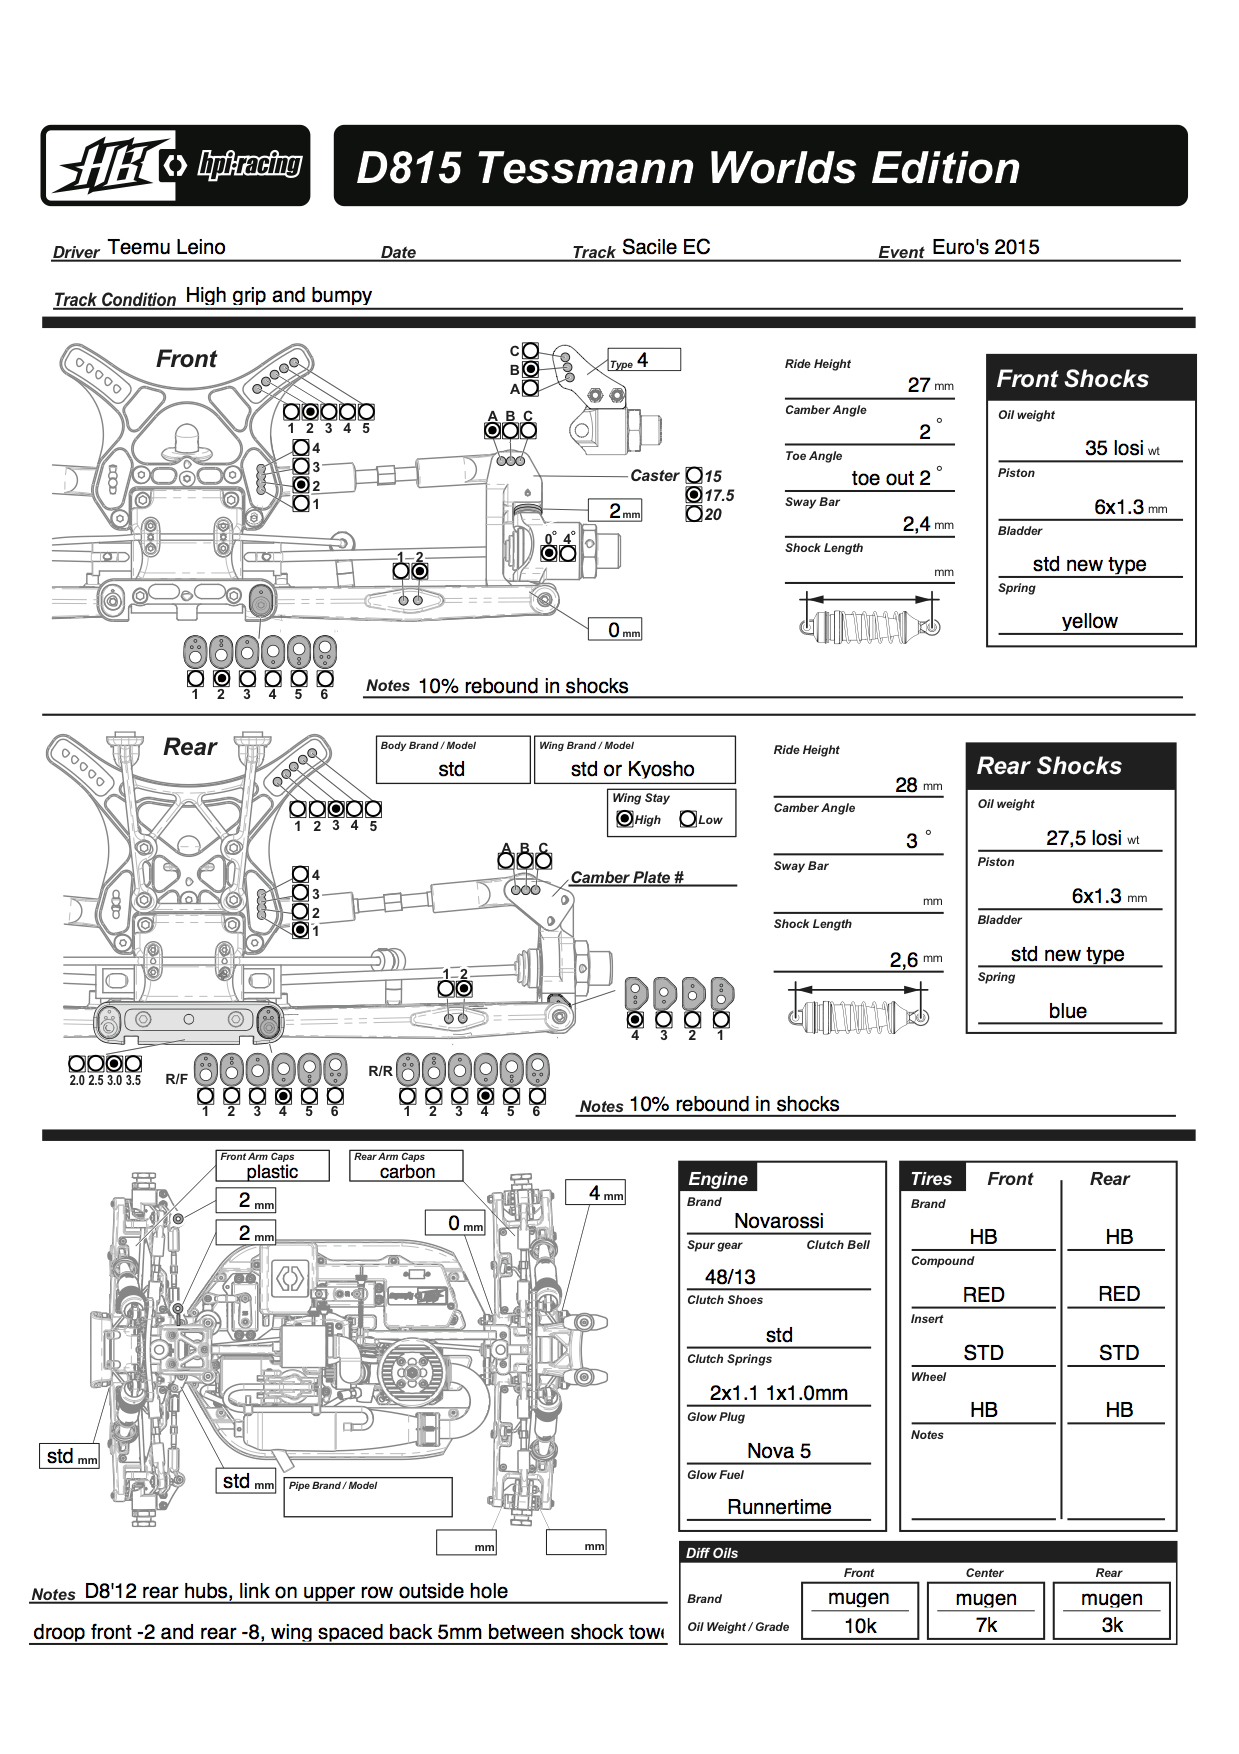 Wiring Diagram 2006 Ford Taurus Cooling Fans moreover Vacuum Hose Diagram 1987 Mazda Rx 7 Turbo Ii 794890 together with Mazda Rx7 1989 Mazda Rx7 Fuel Pump Relay furthermore 1991 Rx7 Radio Wiring Diagram in addition Fuel Pump Resistor Ohm Reading 678053. on mazda rx7 fuse box diagram